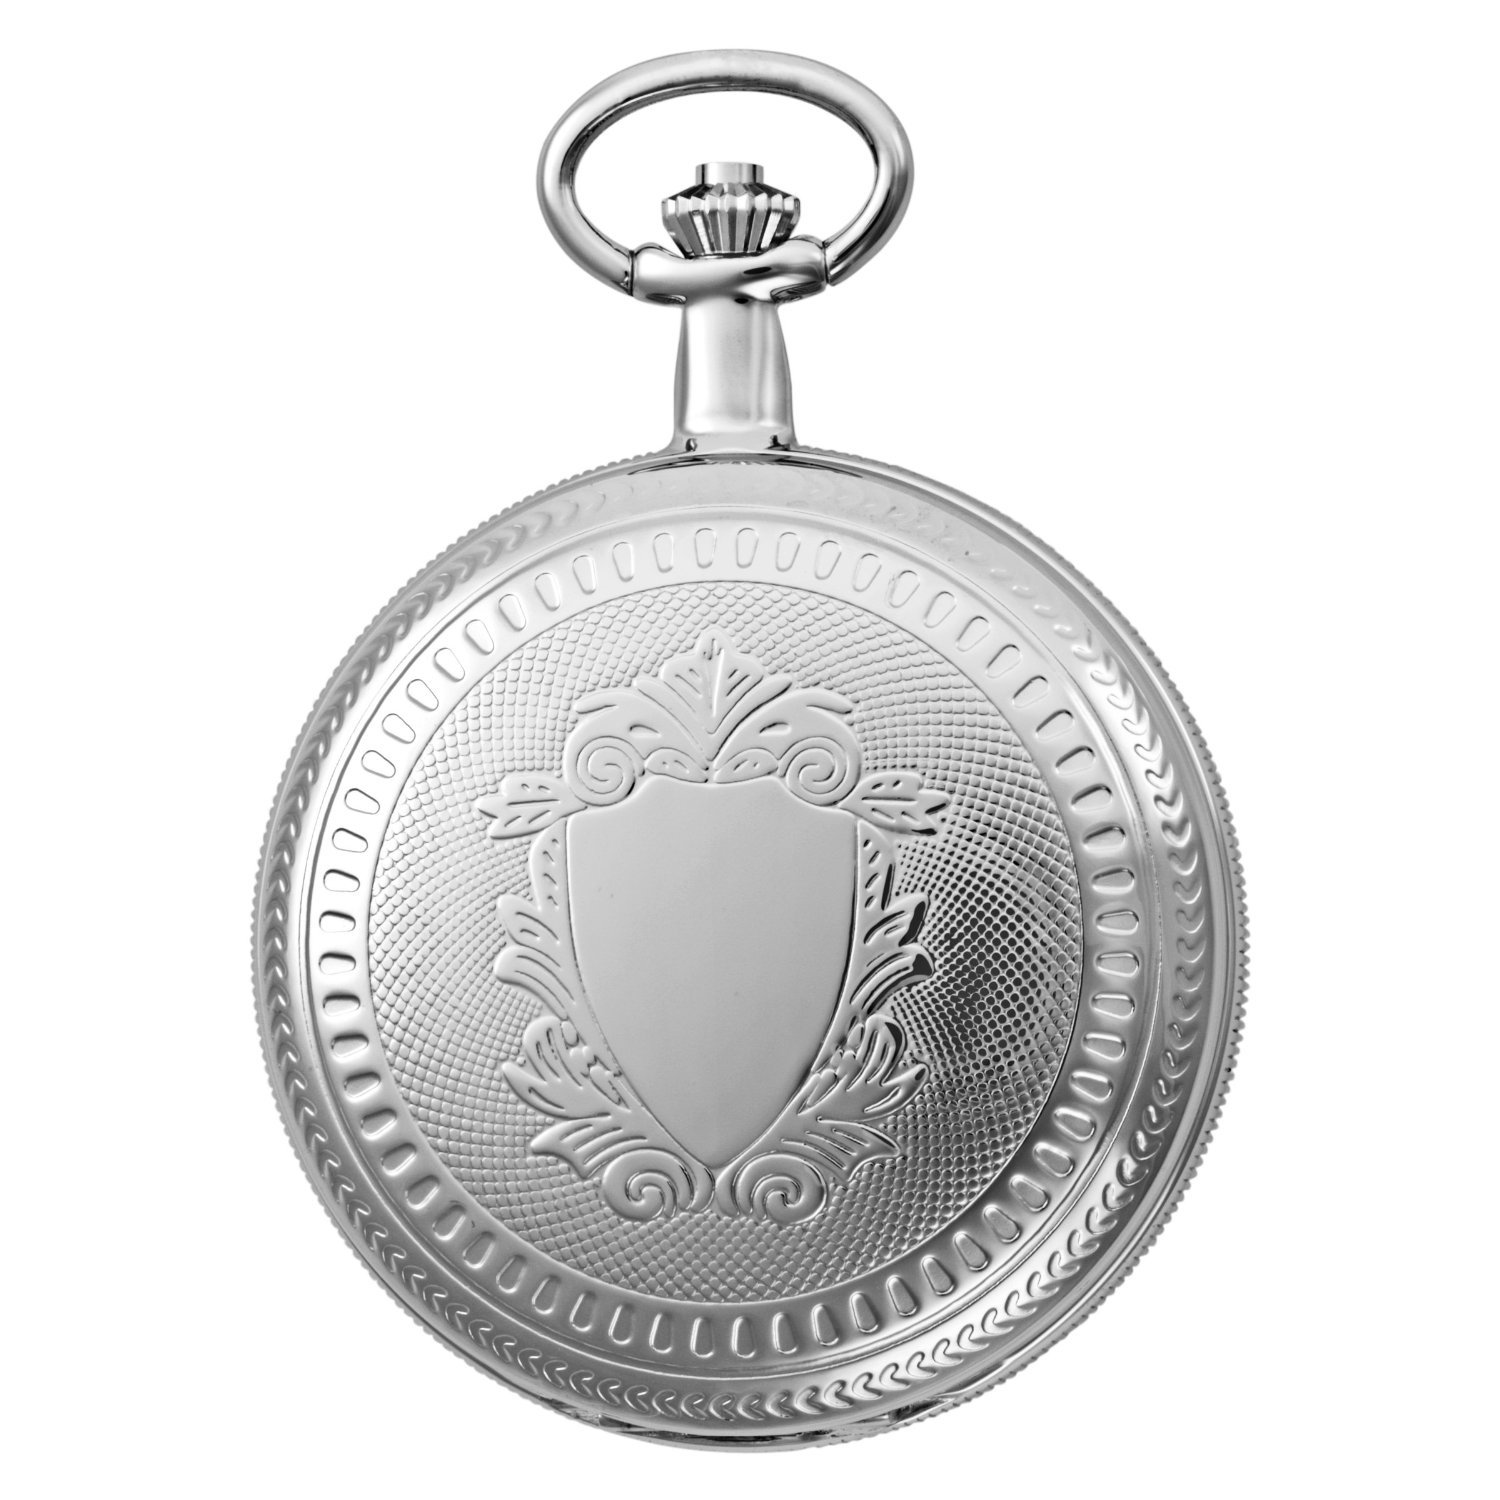 Gotham Men's Silver-Tone Mechanical Pocket Watch with Desktop Stand # GWC14051S-ST by Gotham (Image #2)